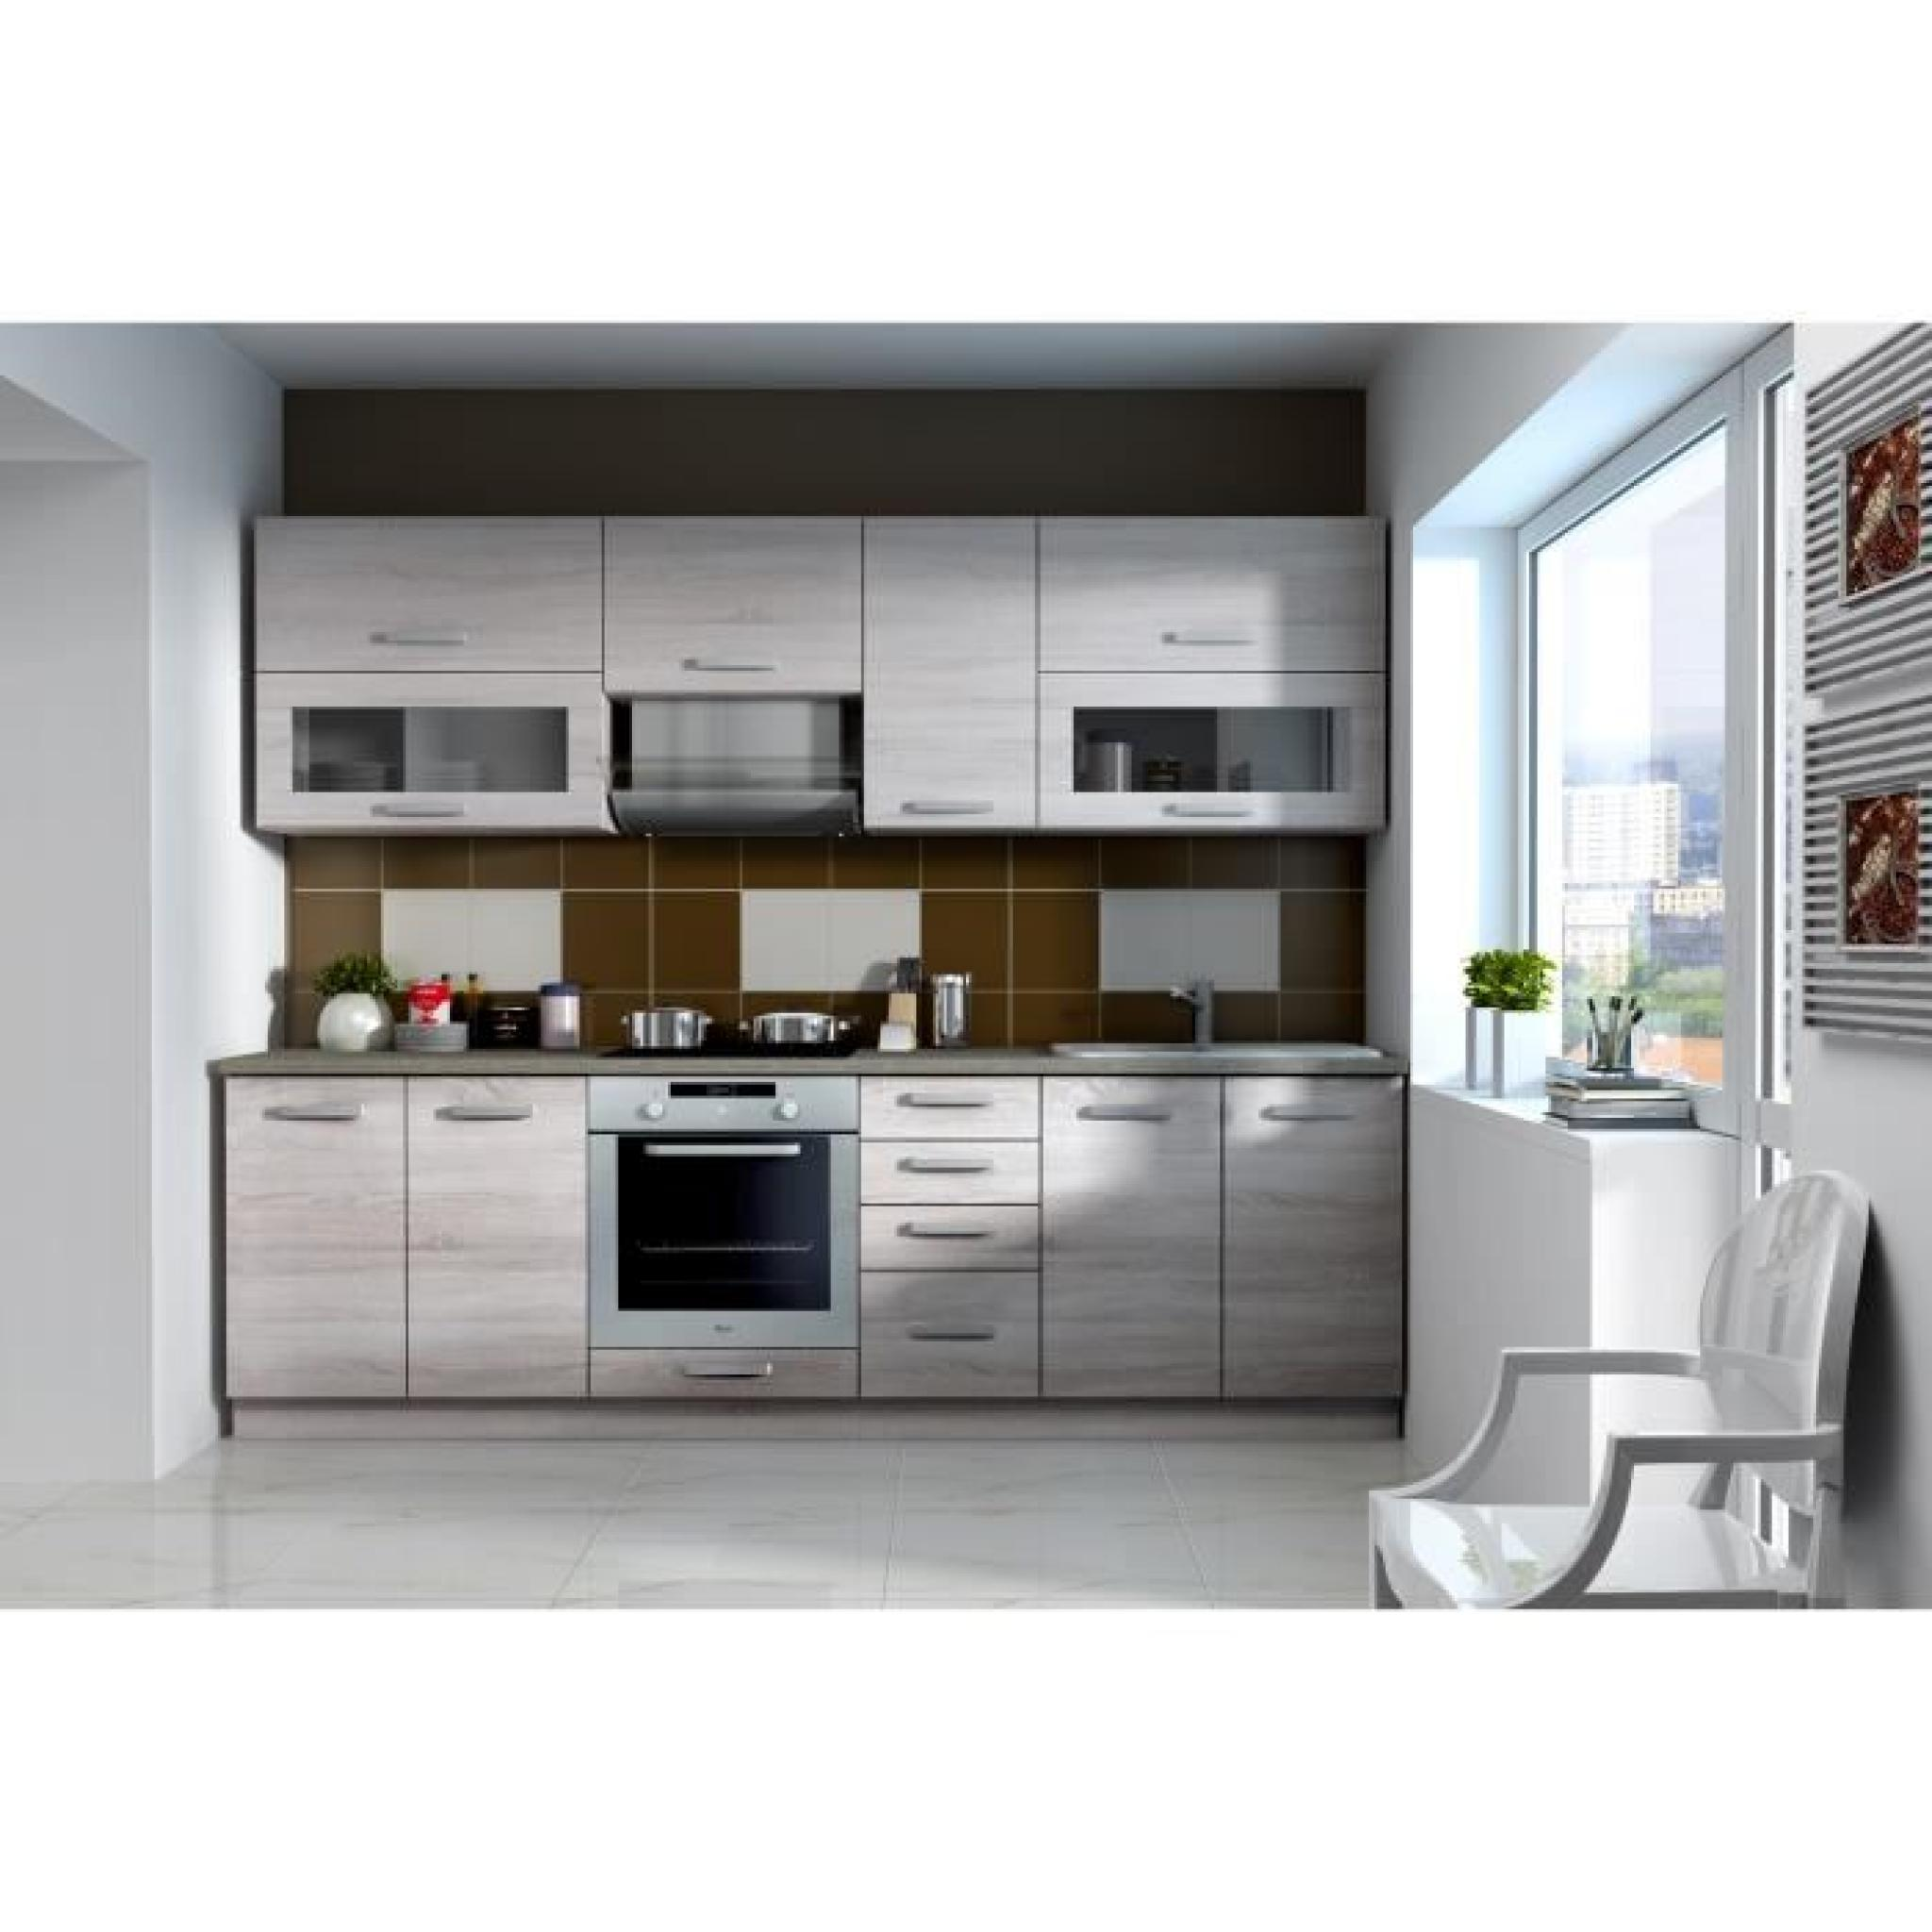 lassen cuisine compl te 2m60 d cor ch ne clair sonoma achat vente cuisine complete pas cher. Black Bedroom Furniture Sets. Home Design Ideas